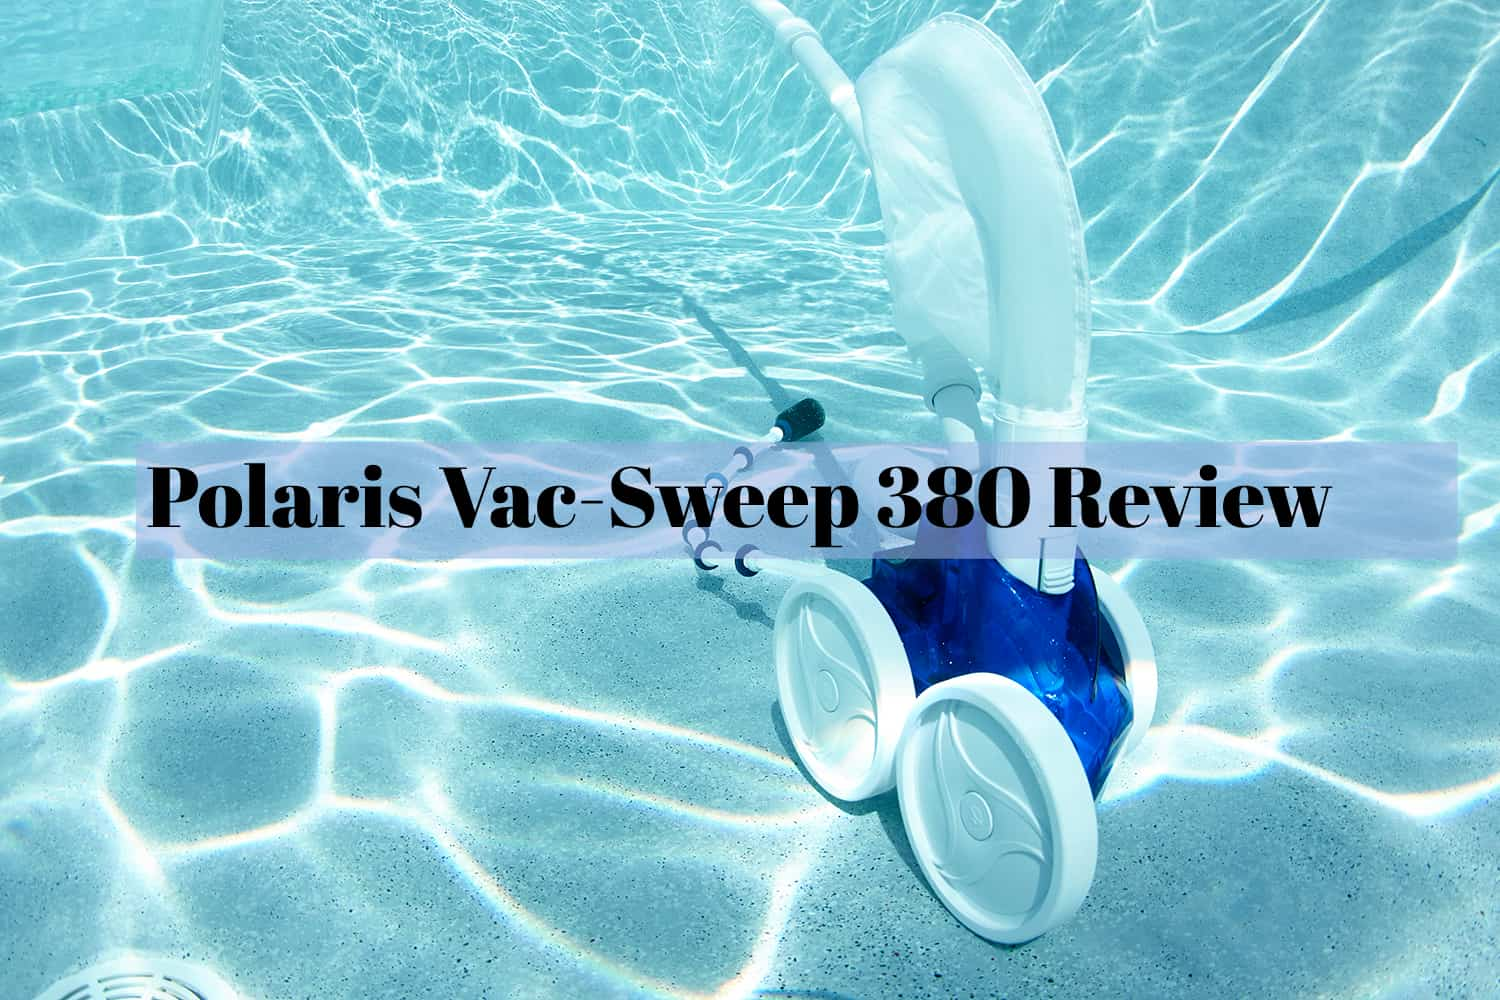 polaris vac-sweep 380 review